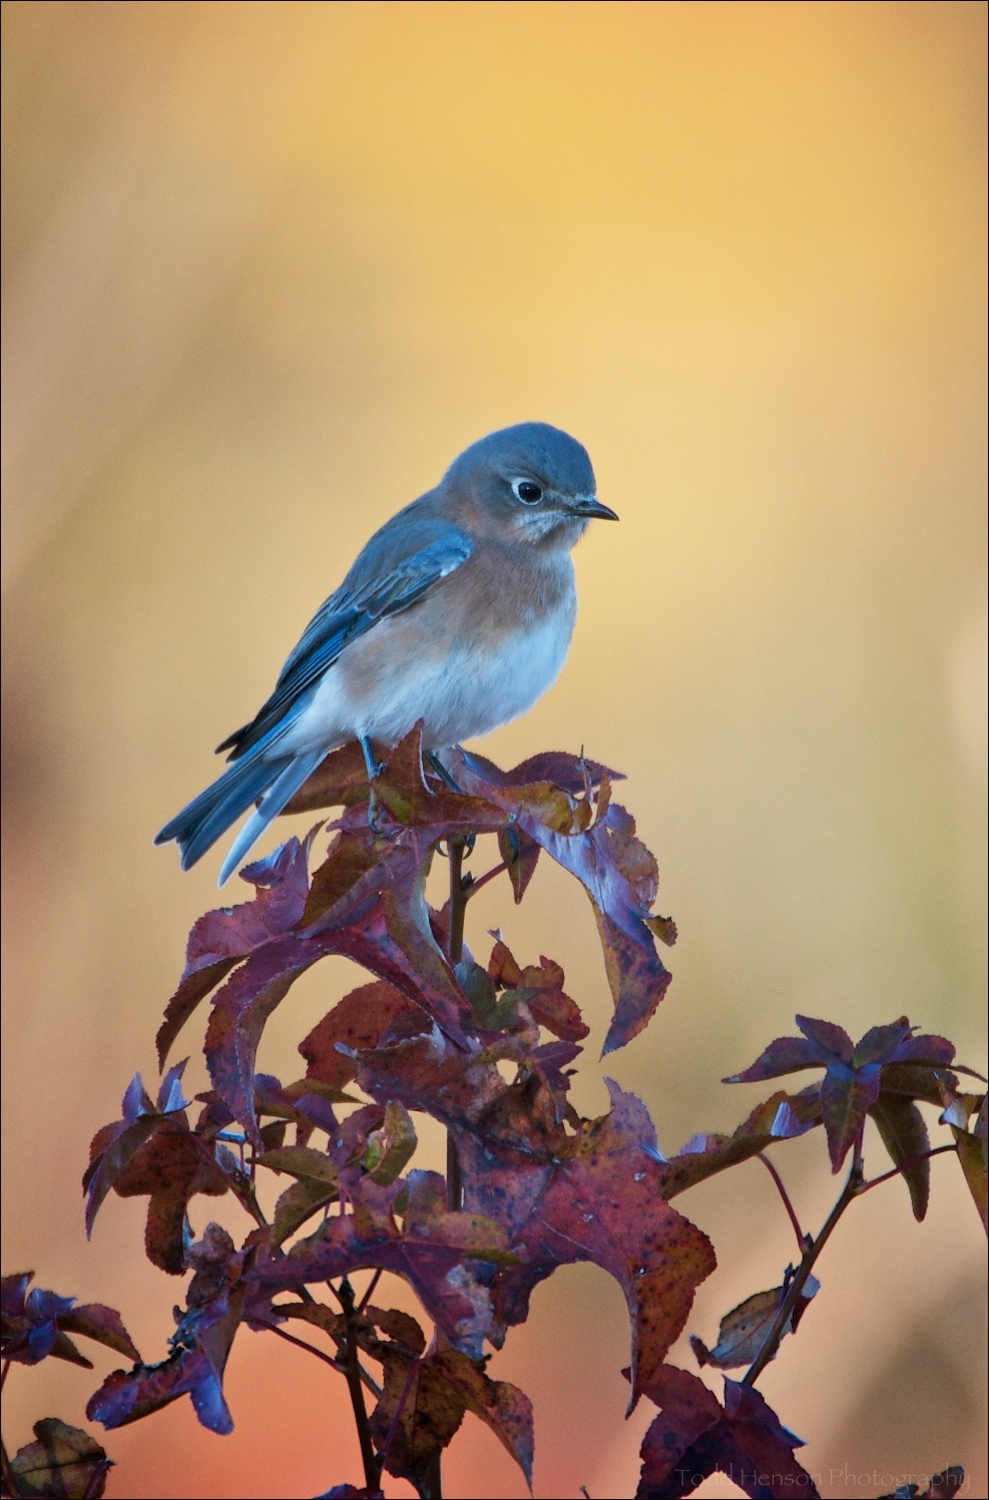 A cloud sheltered this Eastern Bluebird from the sun, yet its light illuminated the autumn colors in the background.